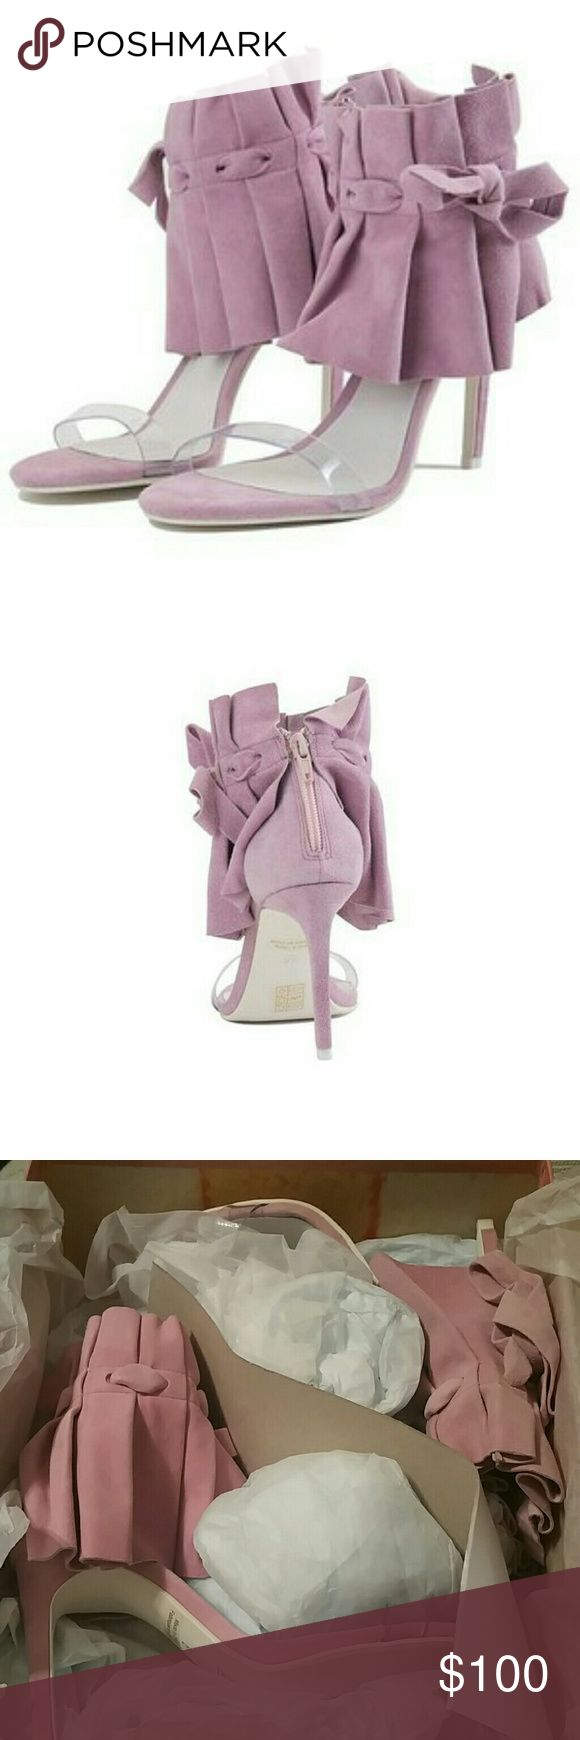 New! Jeffrey Campbell Manguito Lilac Suede Heels New! Jeffrey Campbell Manguito Lilac Suede Heels   Jeffrey Campbell for Women: Manguito Lilac Suede Heels - Suede. 3 inch heel. Back zipper. Clear plastic toe strap.   Sz. 6  Pink/Purple Lilac color Jeffrey Campbell Shoes Heels